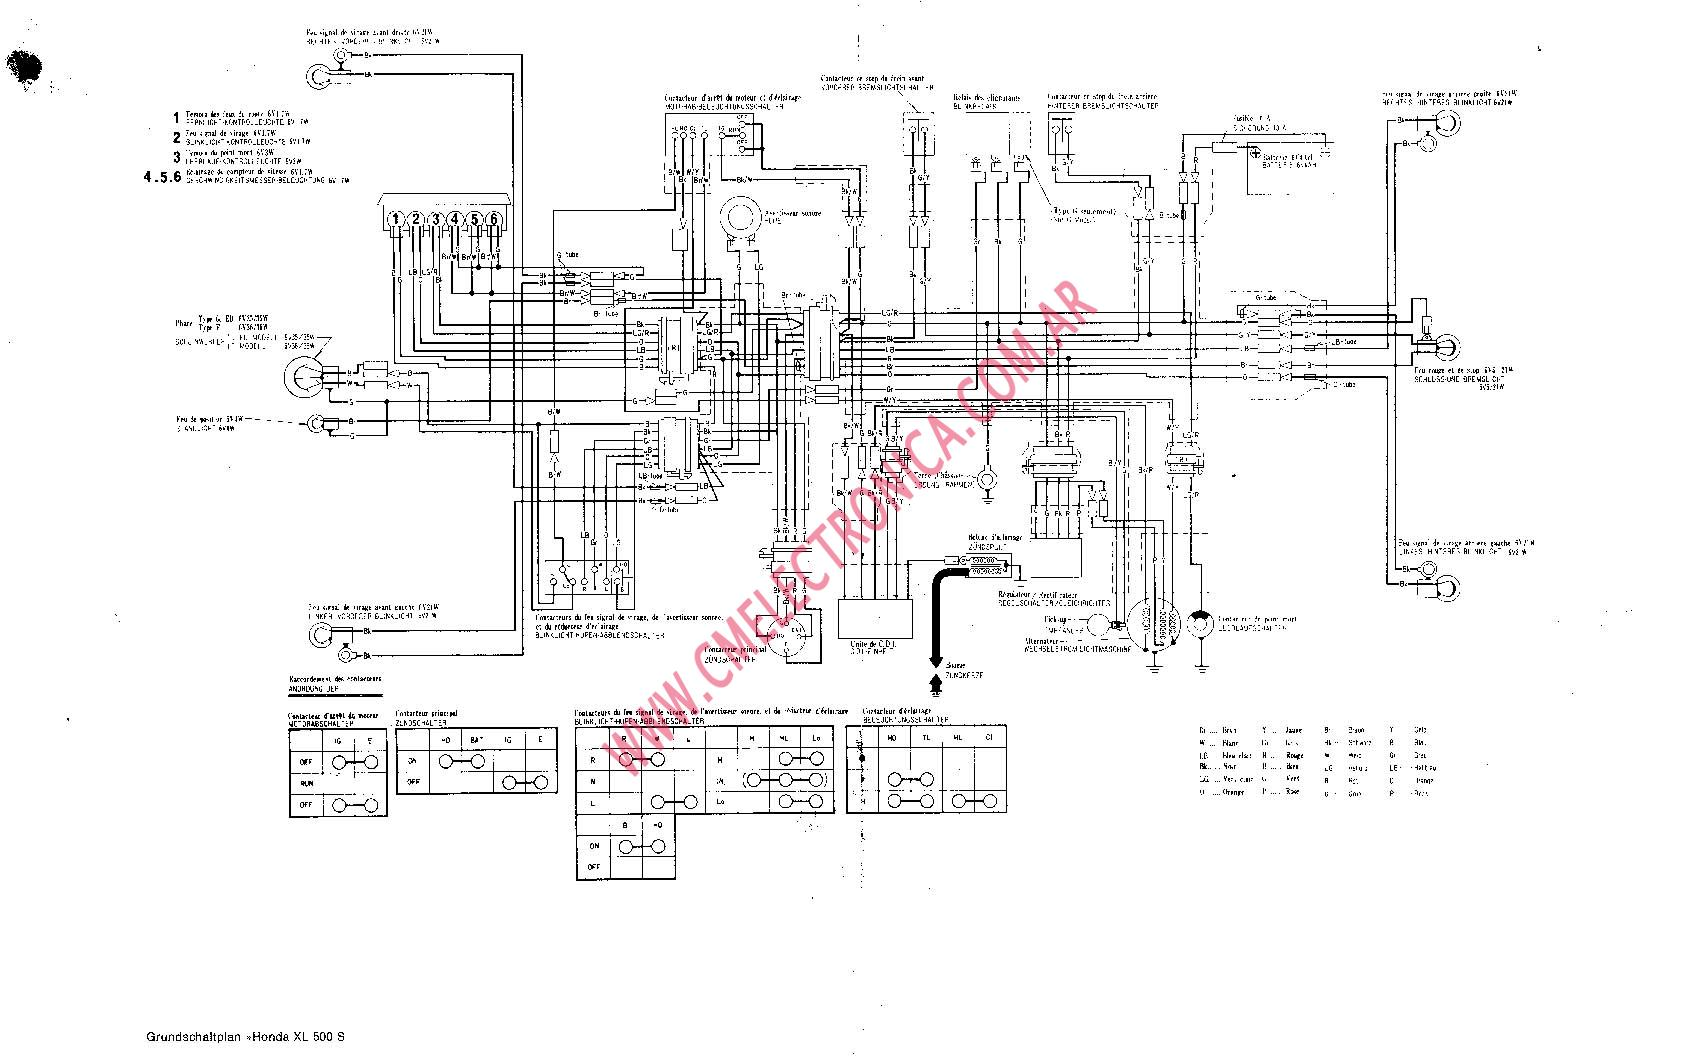 2003 Yamaha R6 Wiring Diagram. Yamaha. Wiring Diagram Images